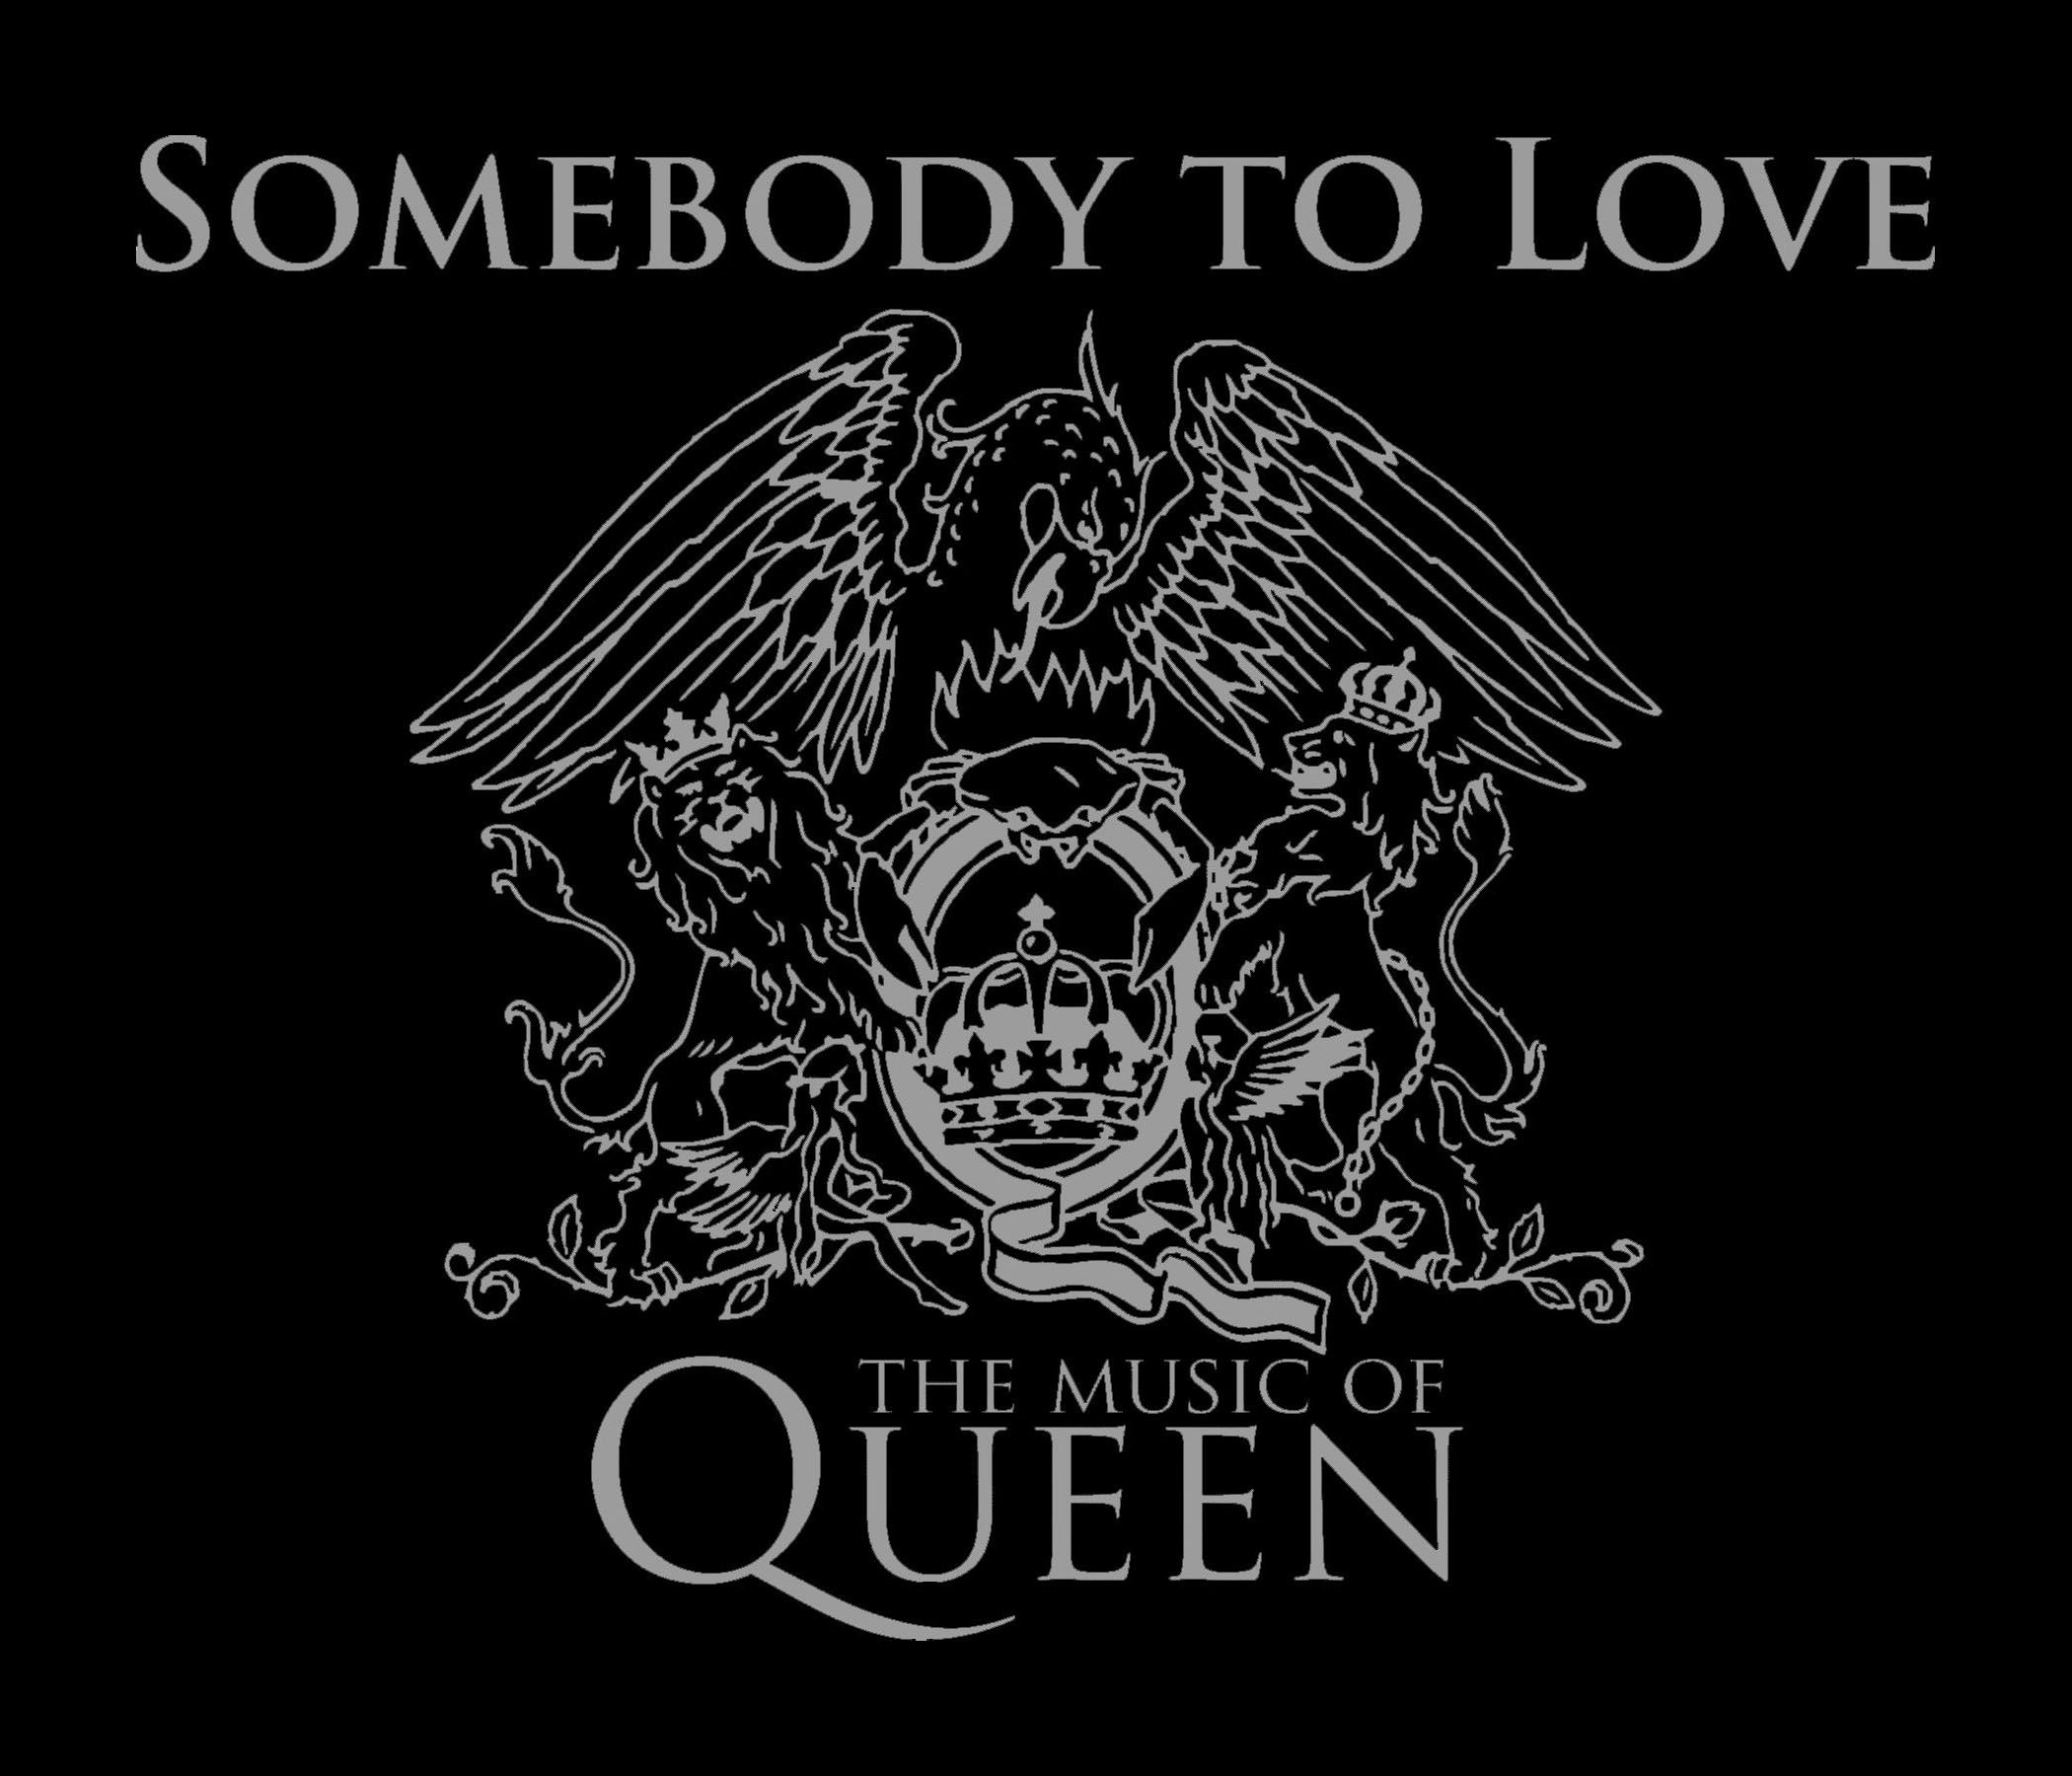 queen band logo Google Search Somebody to love, Queen